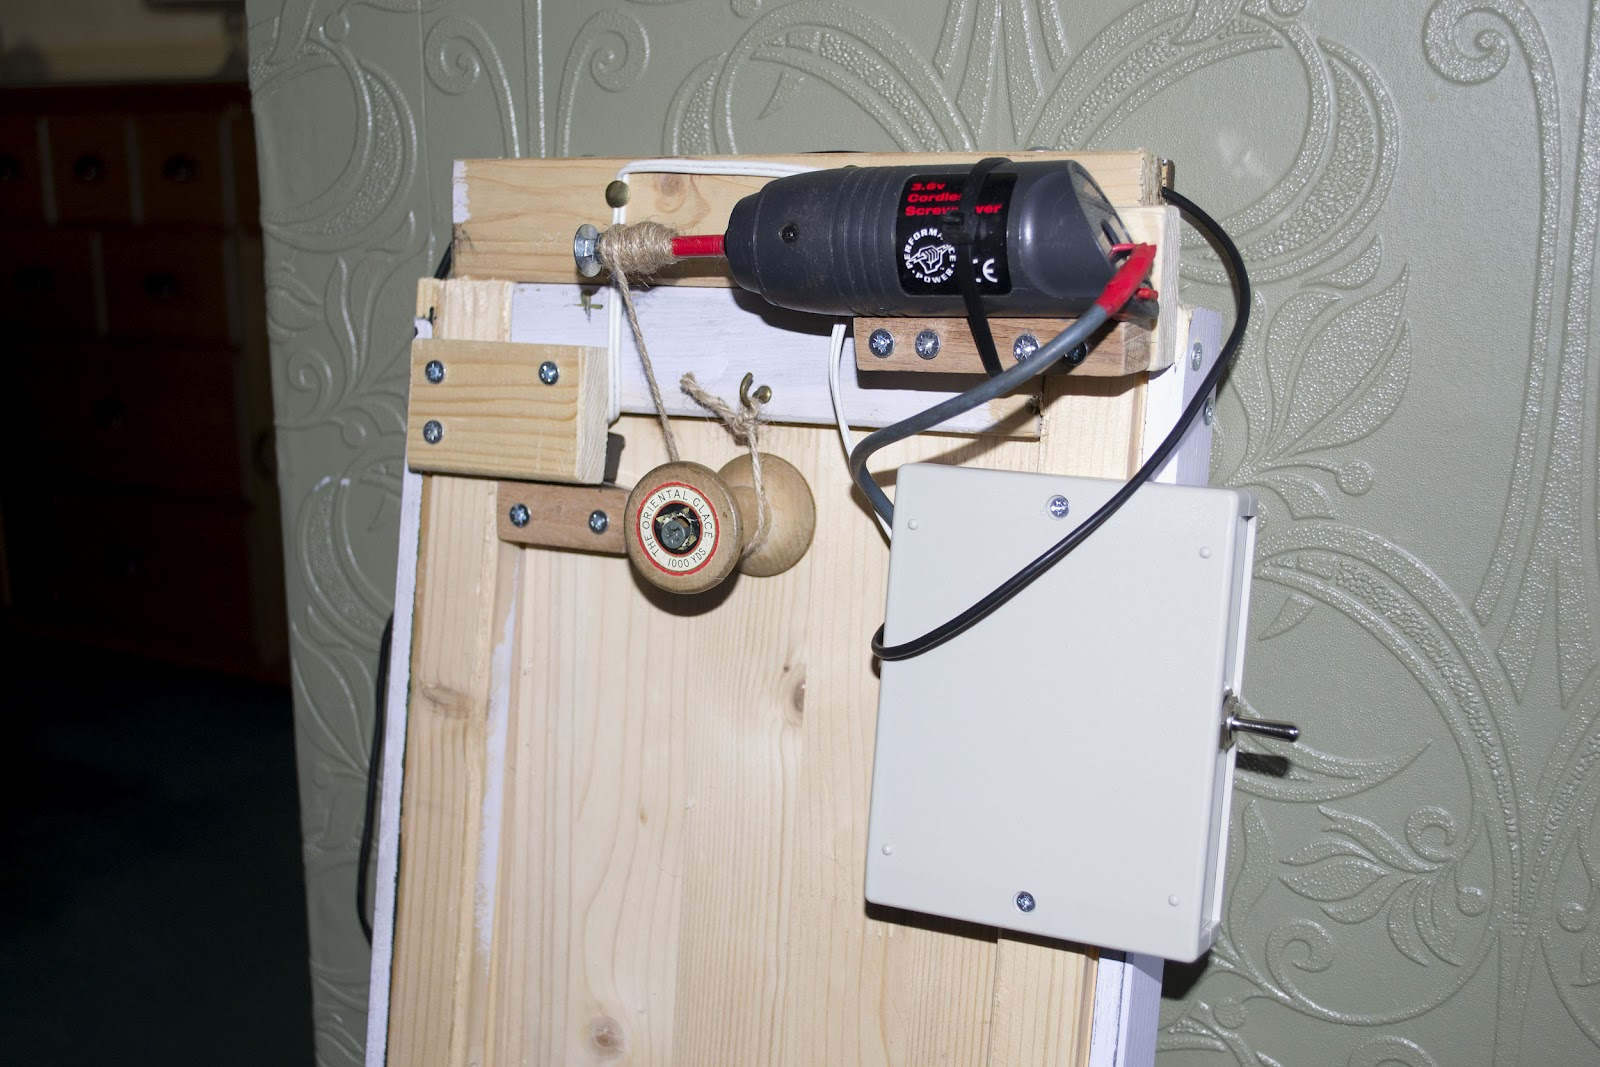 Diy Automatic Coop Door Opener besides Carrera Digital Slot Car Layout Table And Tons Of Extras 22x6 Table Power Supply 287681 furthermore 12v Delay Timer Relay together with Denver Cau 430 as well 7 Car Headrest Lcd Monitor With Built. on slot car power supply